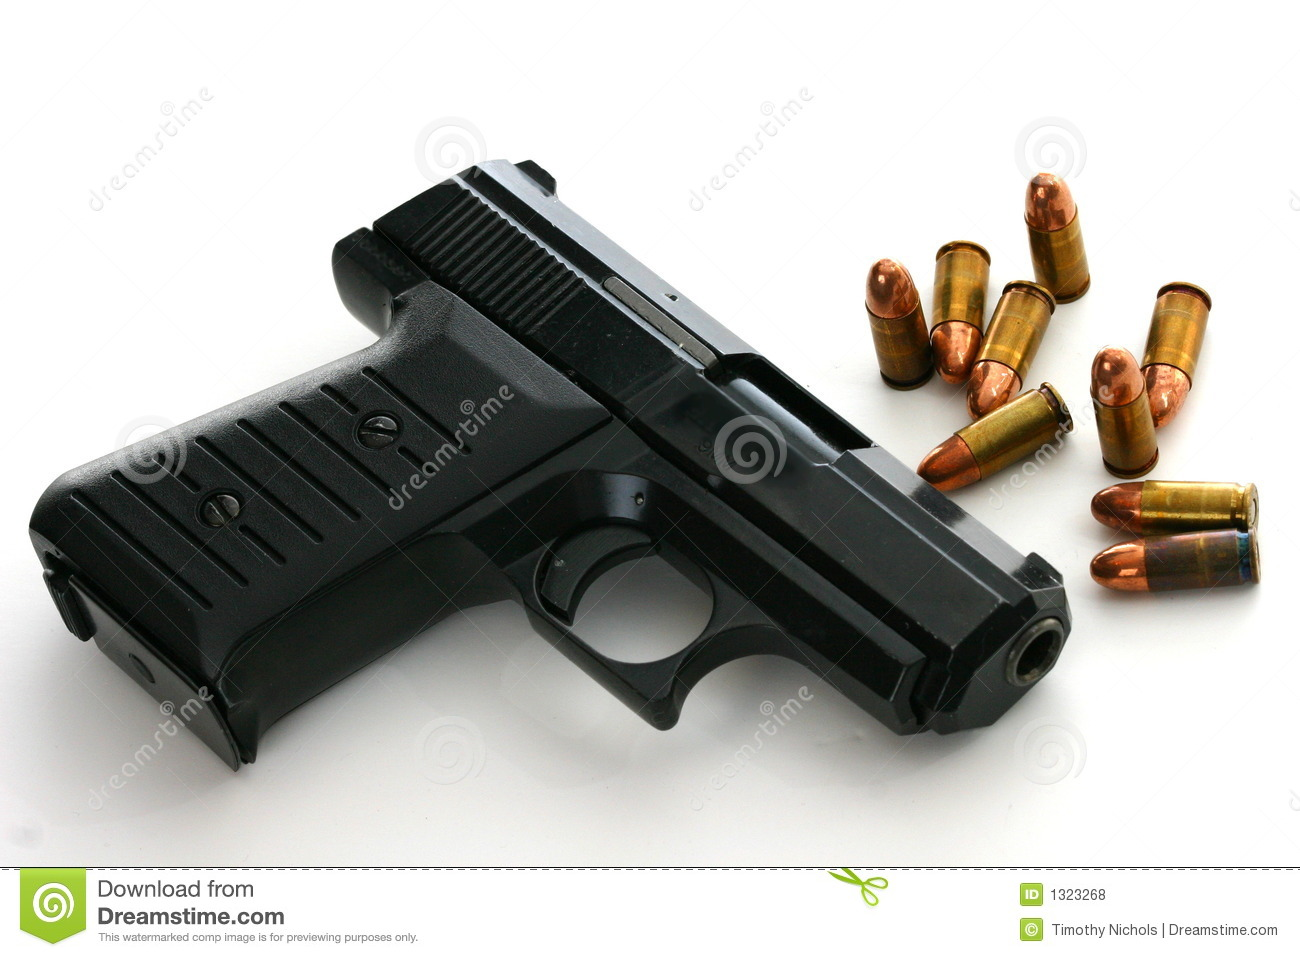 9mm Pistol With Ammo Royalty Free Stock Photos   Image  1323268